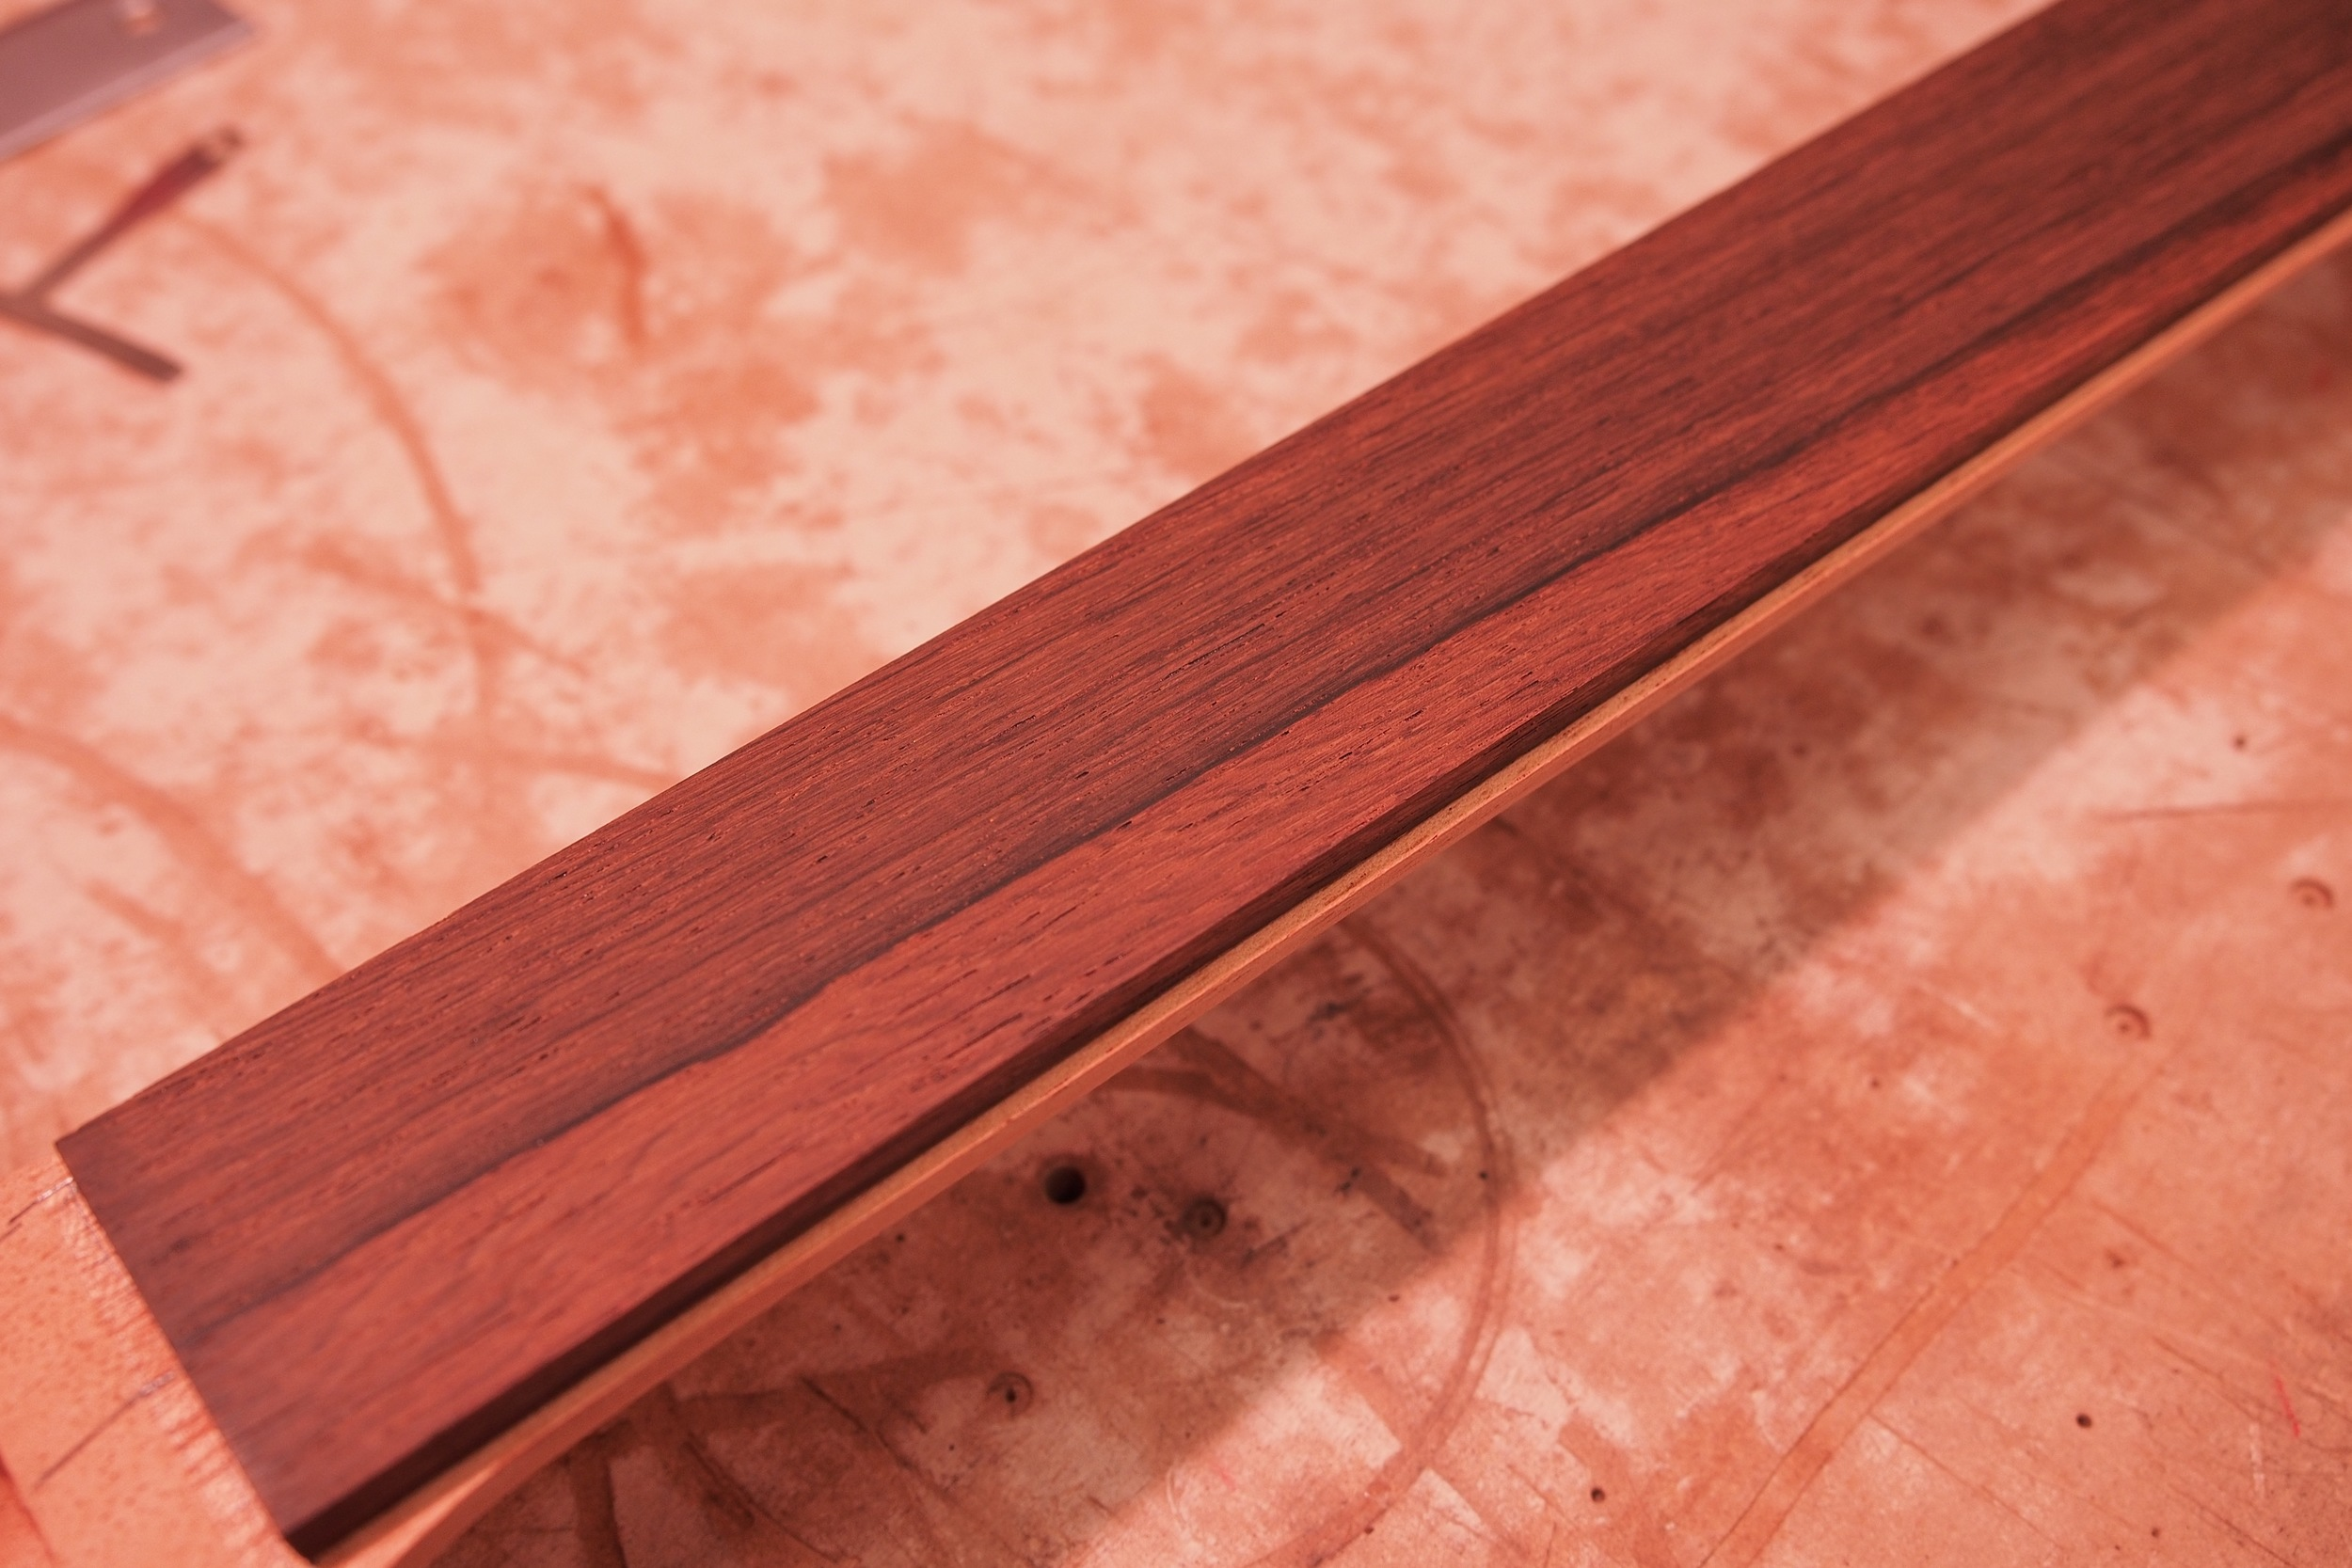 A nice shot of the new fingerboard. It's sized down, and ready for the binding, which I should have in a few days. Once I get the new binding and truss rod, it will be time for neck assembly, final neck shape to 63/64 specs, finish, and final body/neck assembly. More pictures to come!